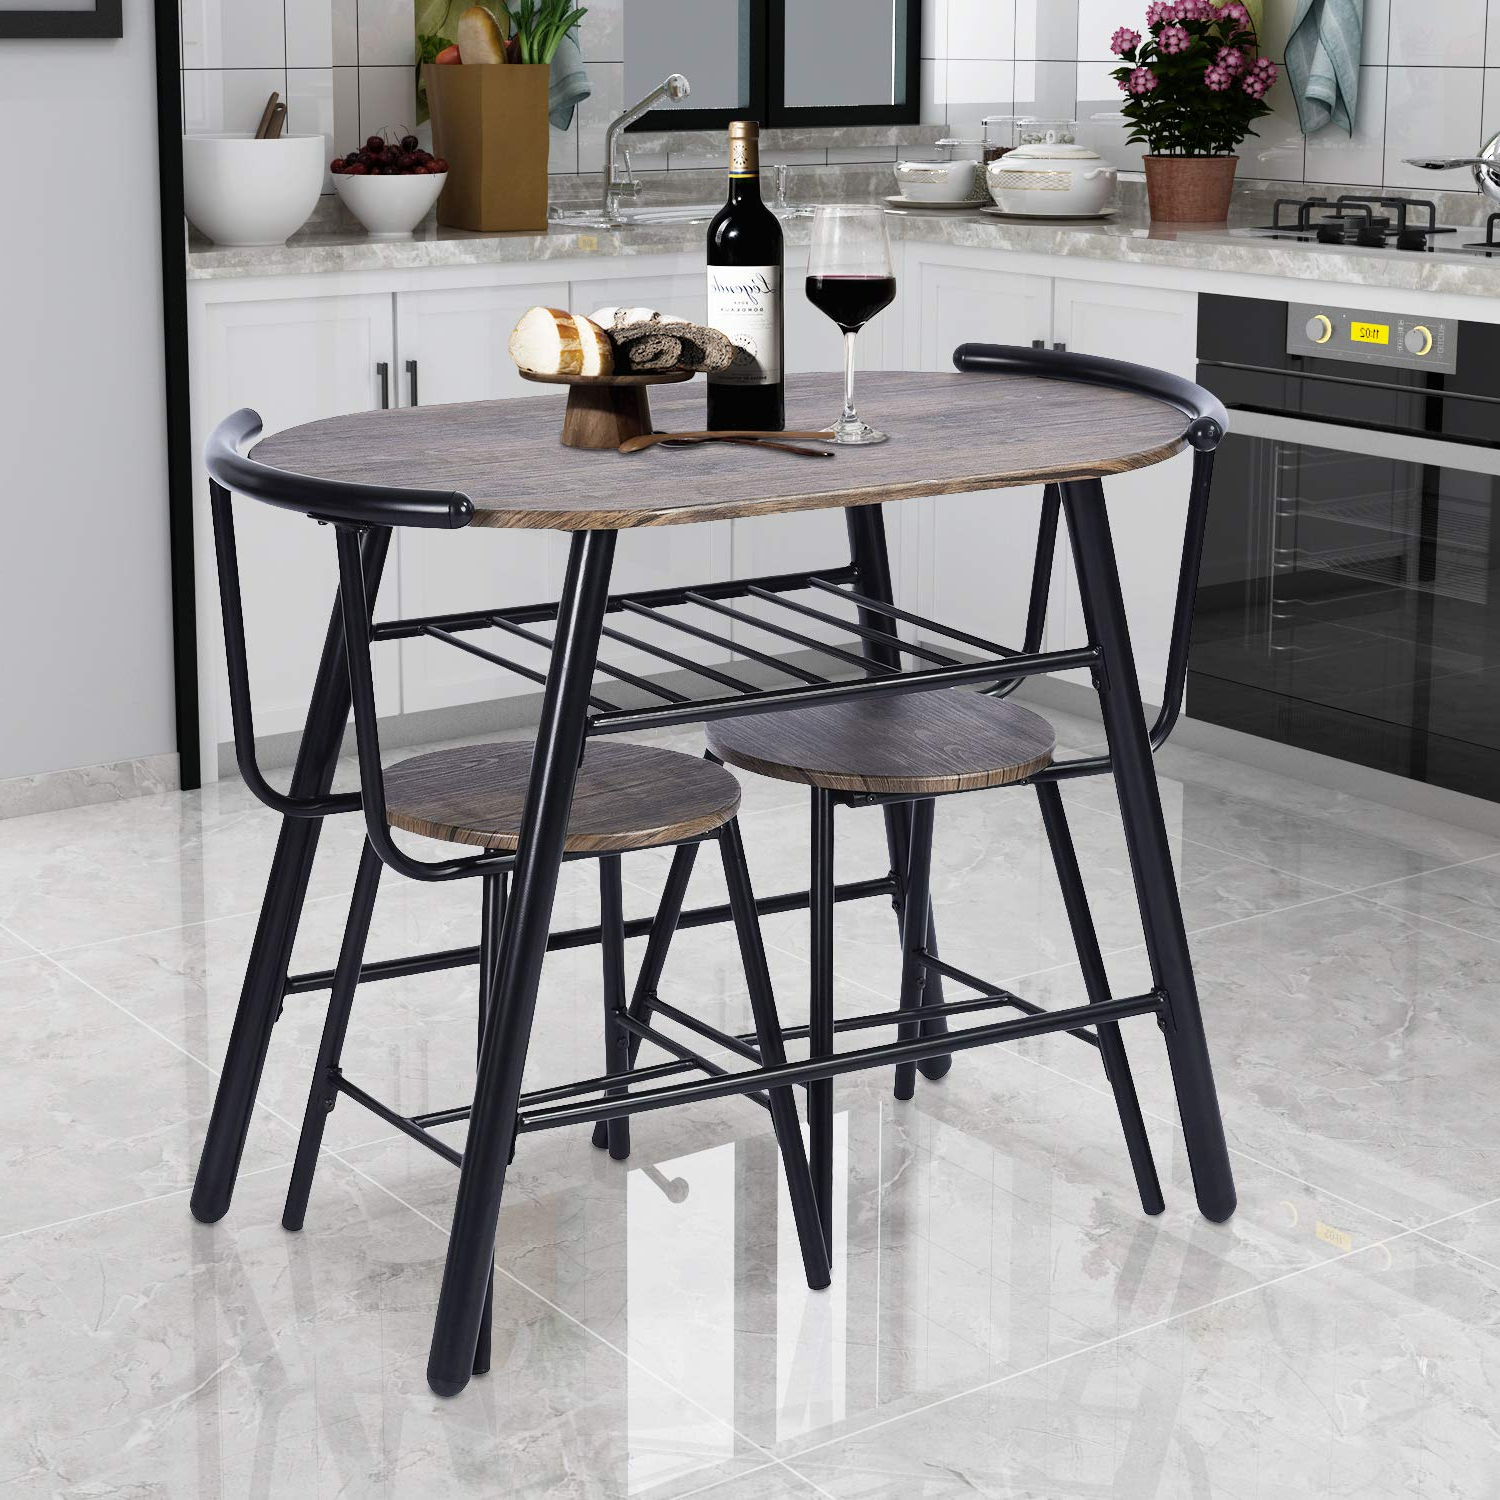 Most Current 3 Piece Breakfast Dining Sets In Greenforest 3 Piece Dining Table And Chairs Set Modern Breakfast Table Sets Rustic Bistro Dining Set Bar Pub Table Sets Restaurant Kitchen Table Set, (View 17 of 20)